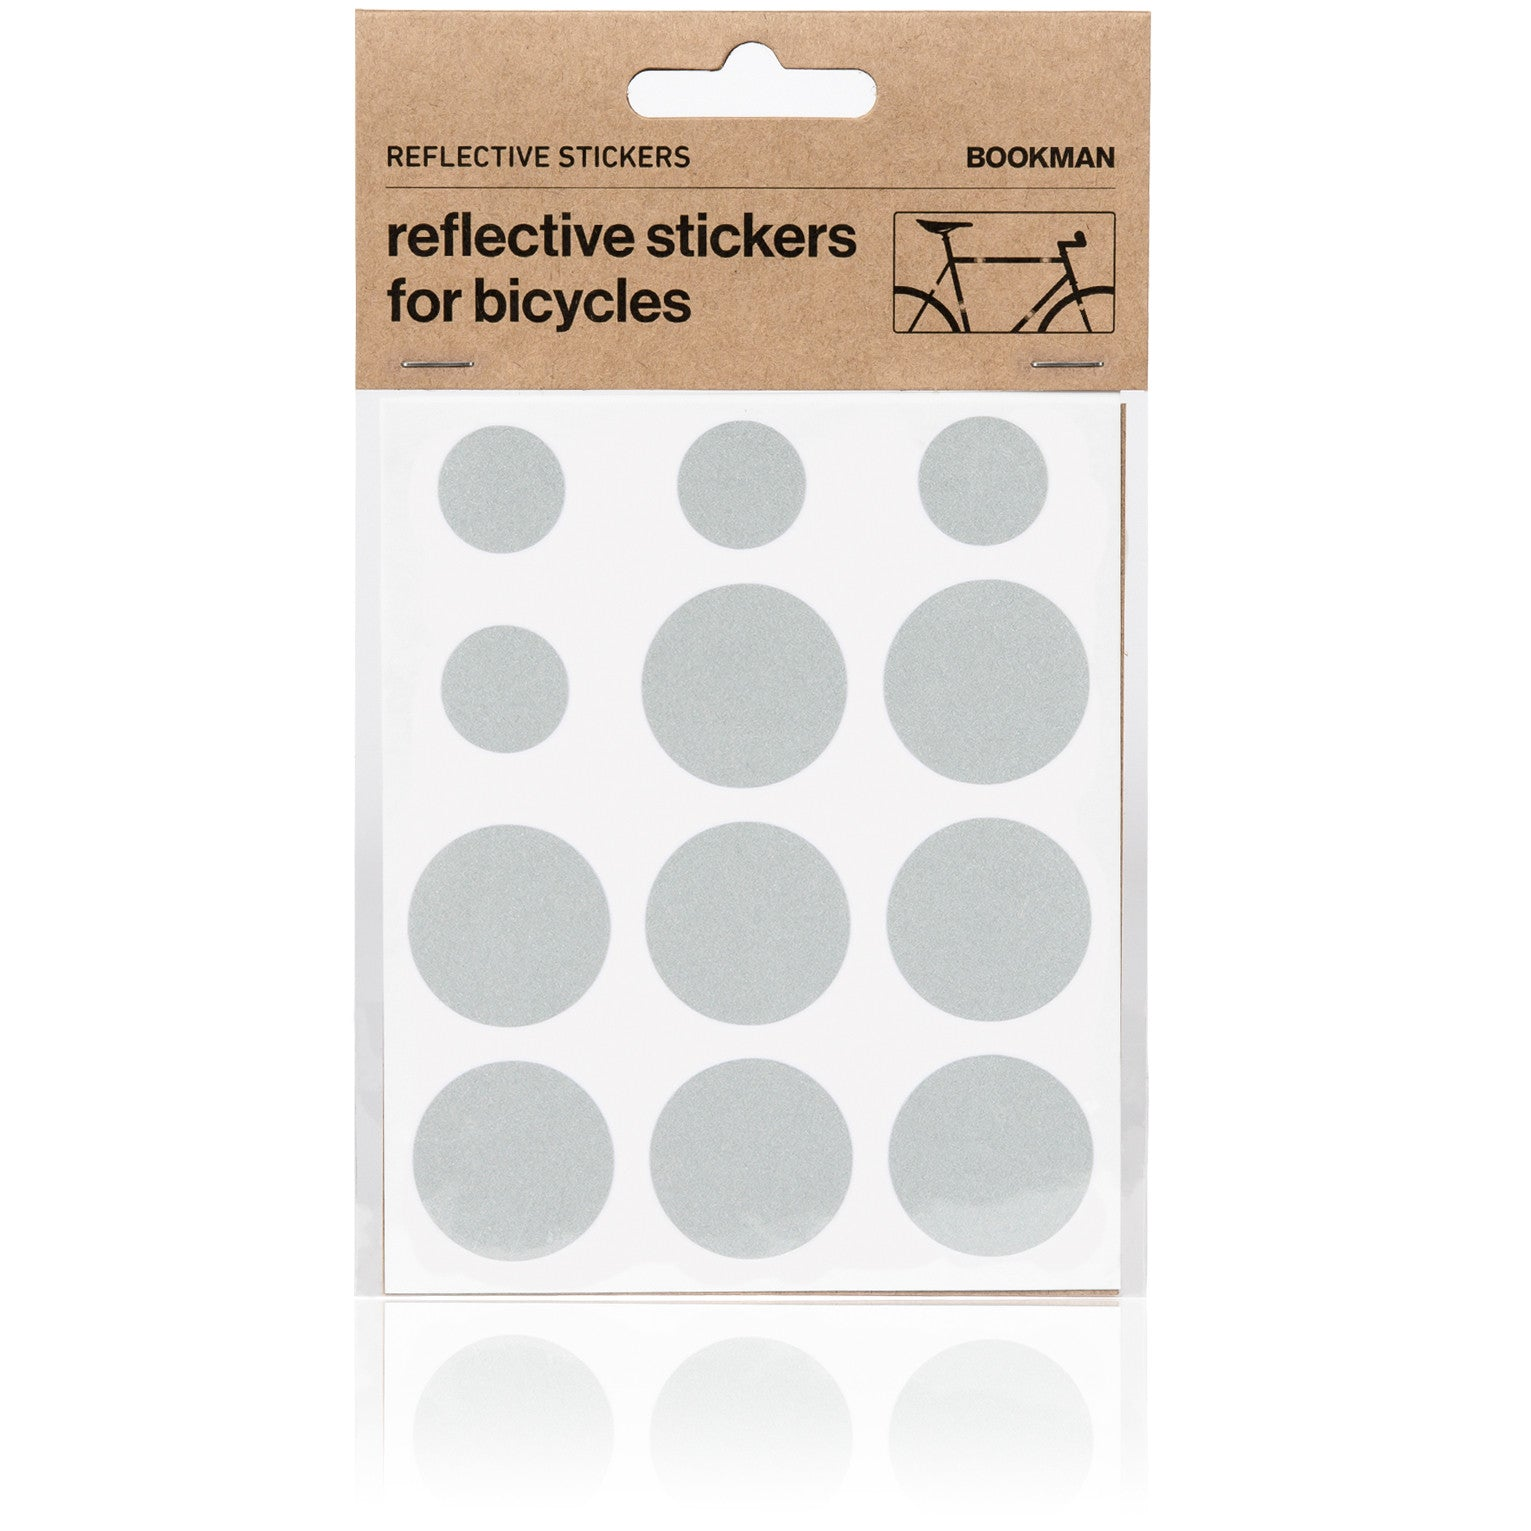 Reflective Dots Stickers for Bikes - White | BOOKMAN